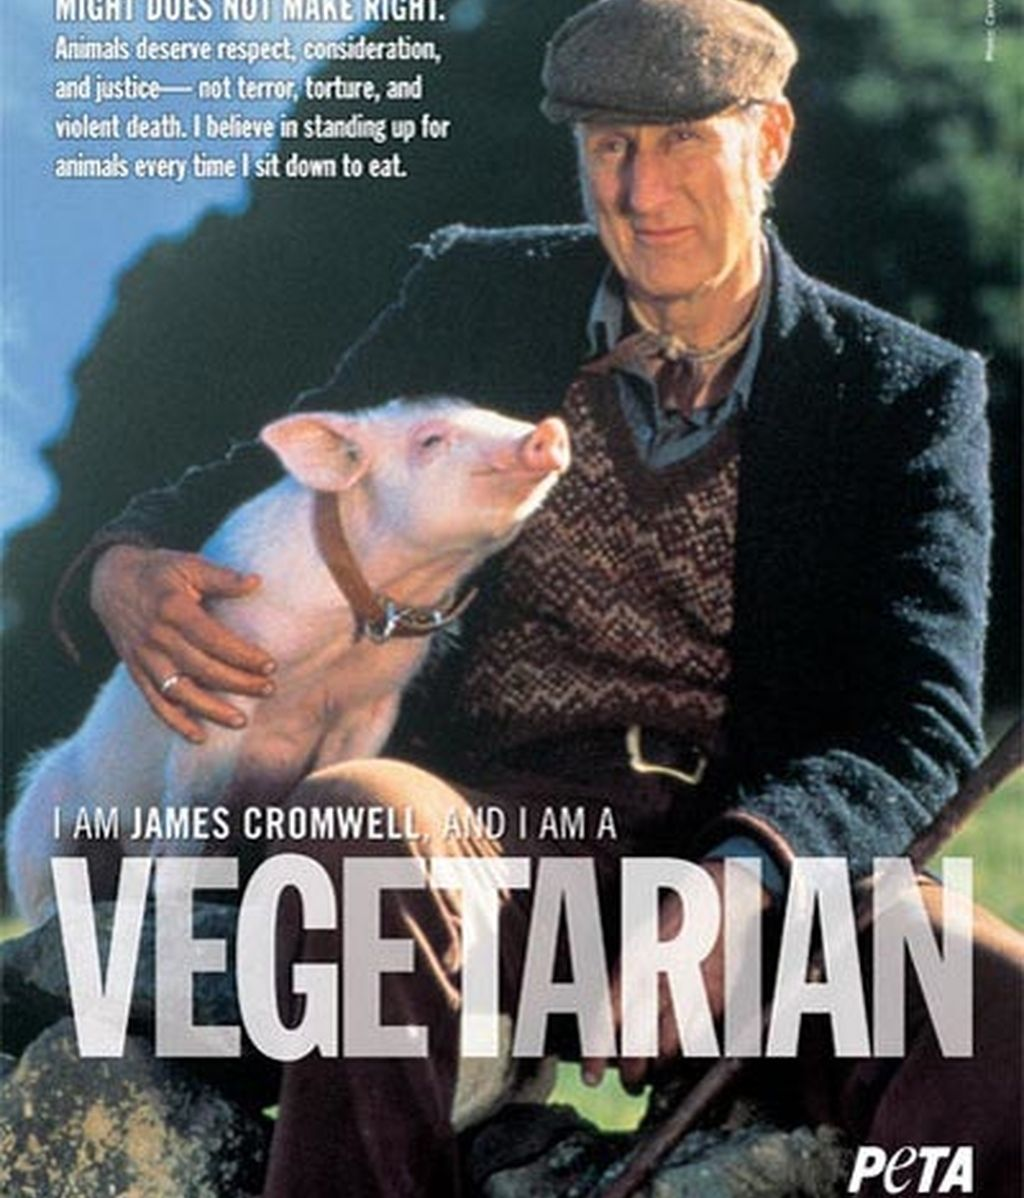 James Cromwell con los animales